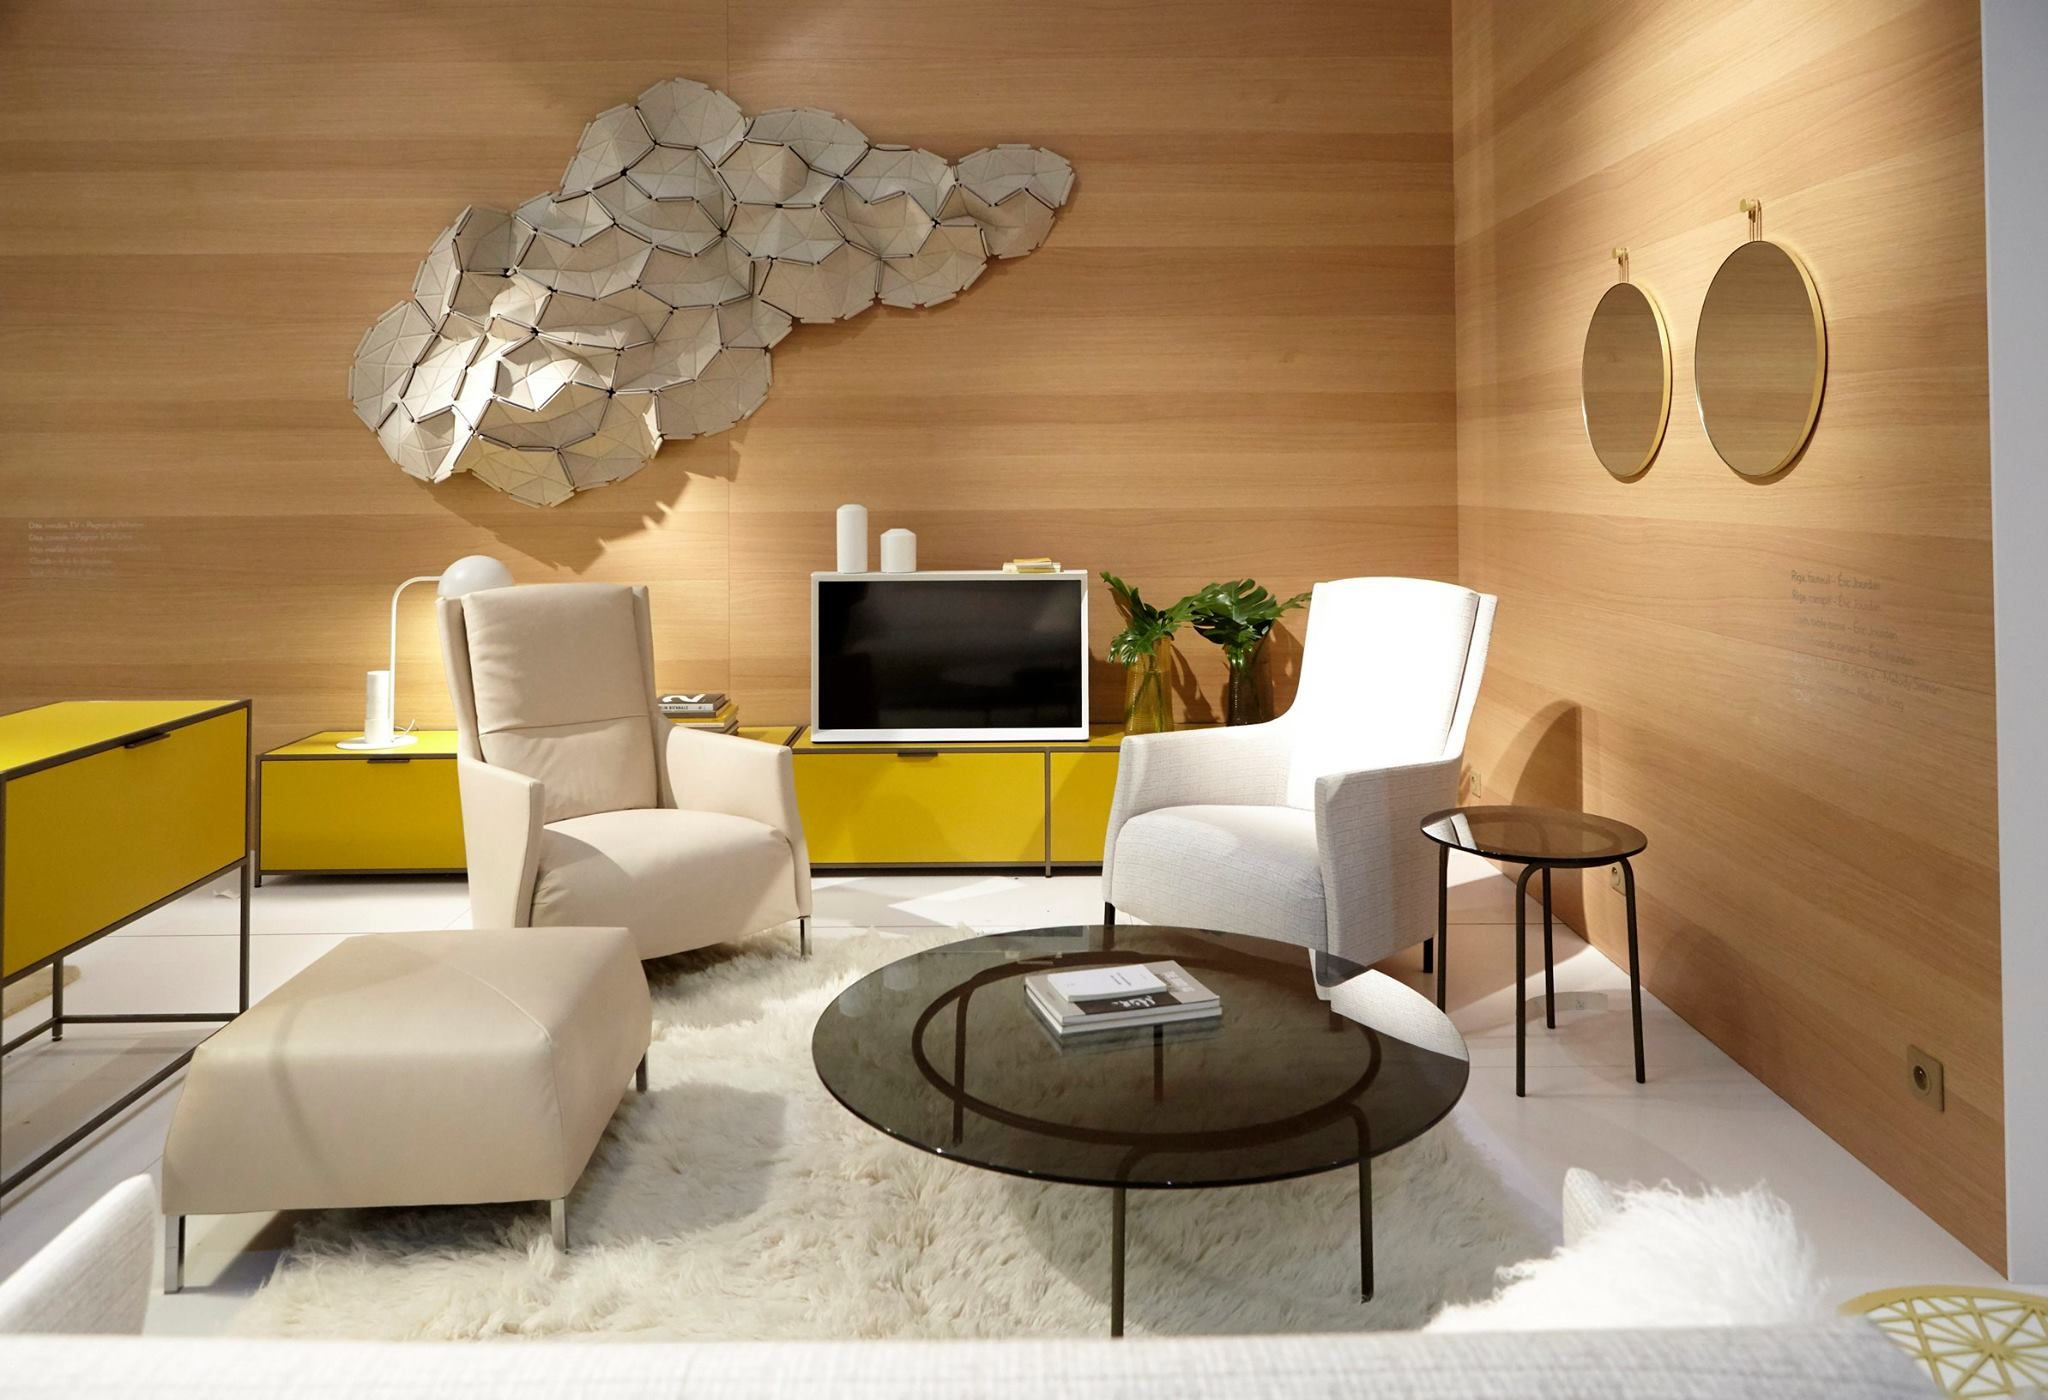 Ligne roset at maison s booth from the maison objet furniture fair in paris france